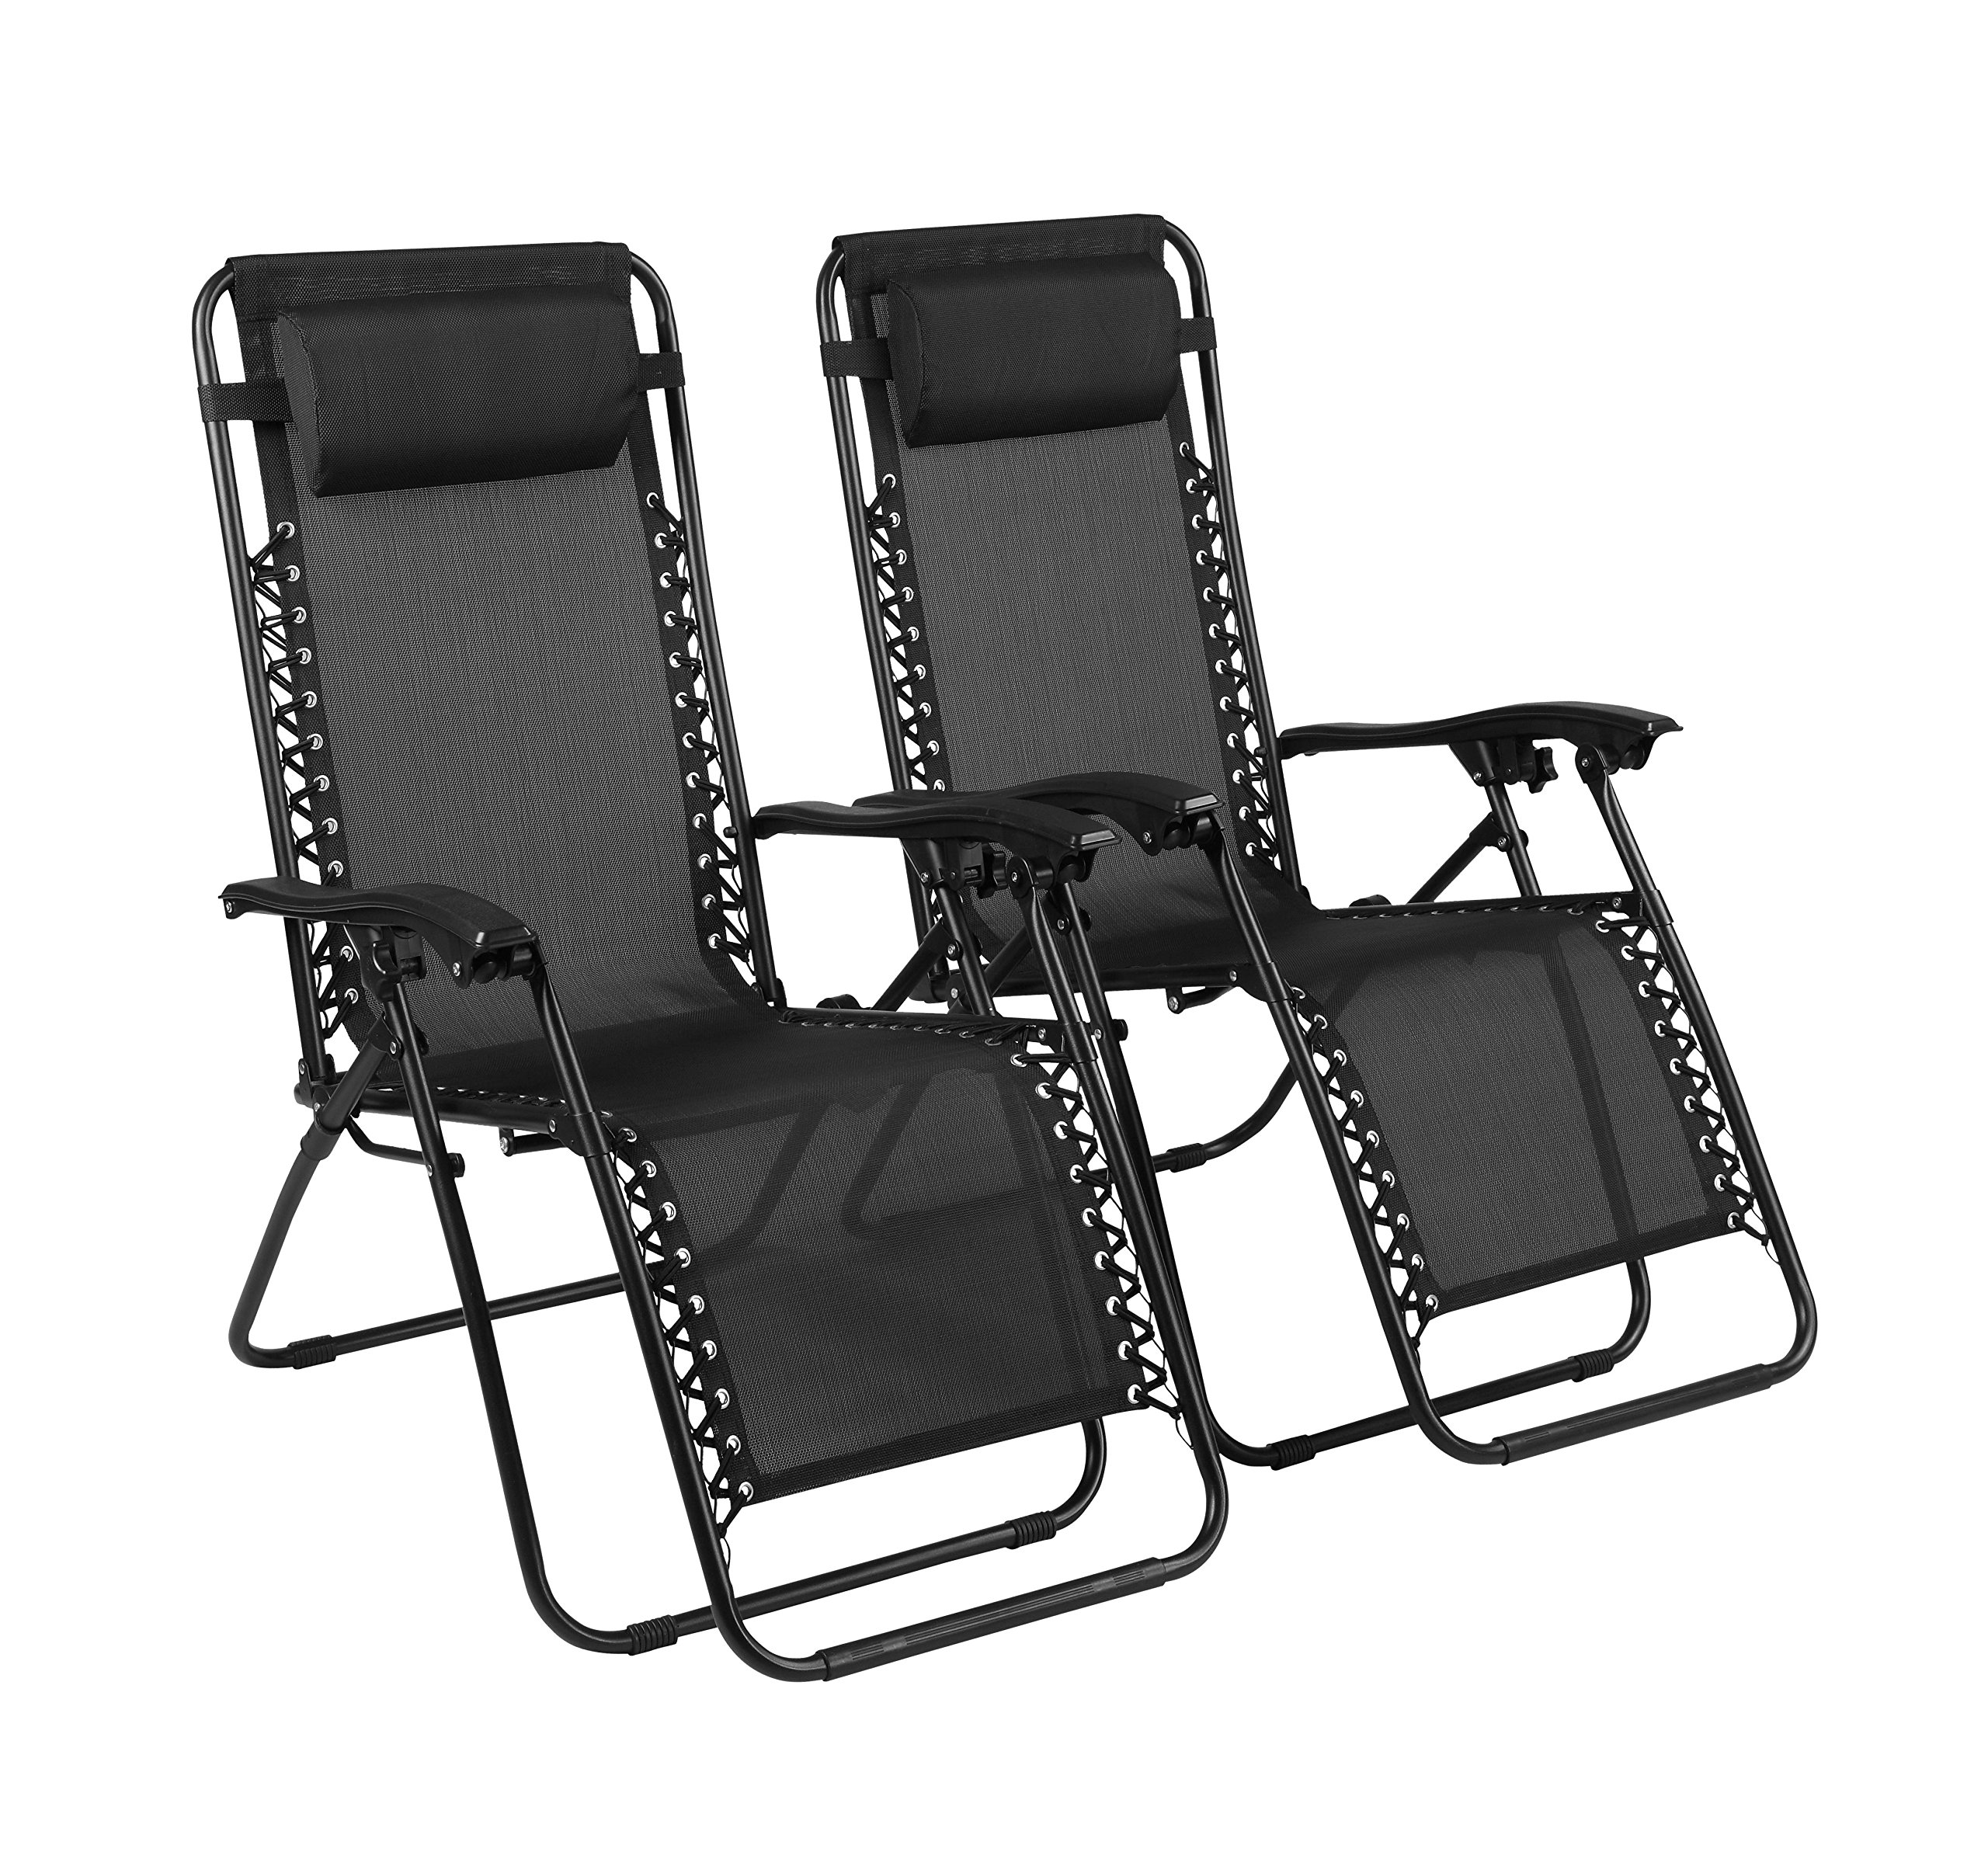 Naomi Home Zero Gravity Lounge Patio Outdoor Recliner Chairs Black/Set of 2 by Naomi Home